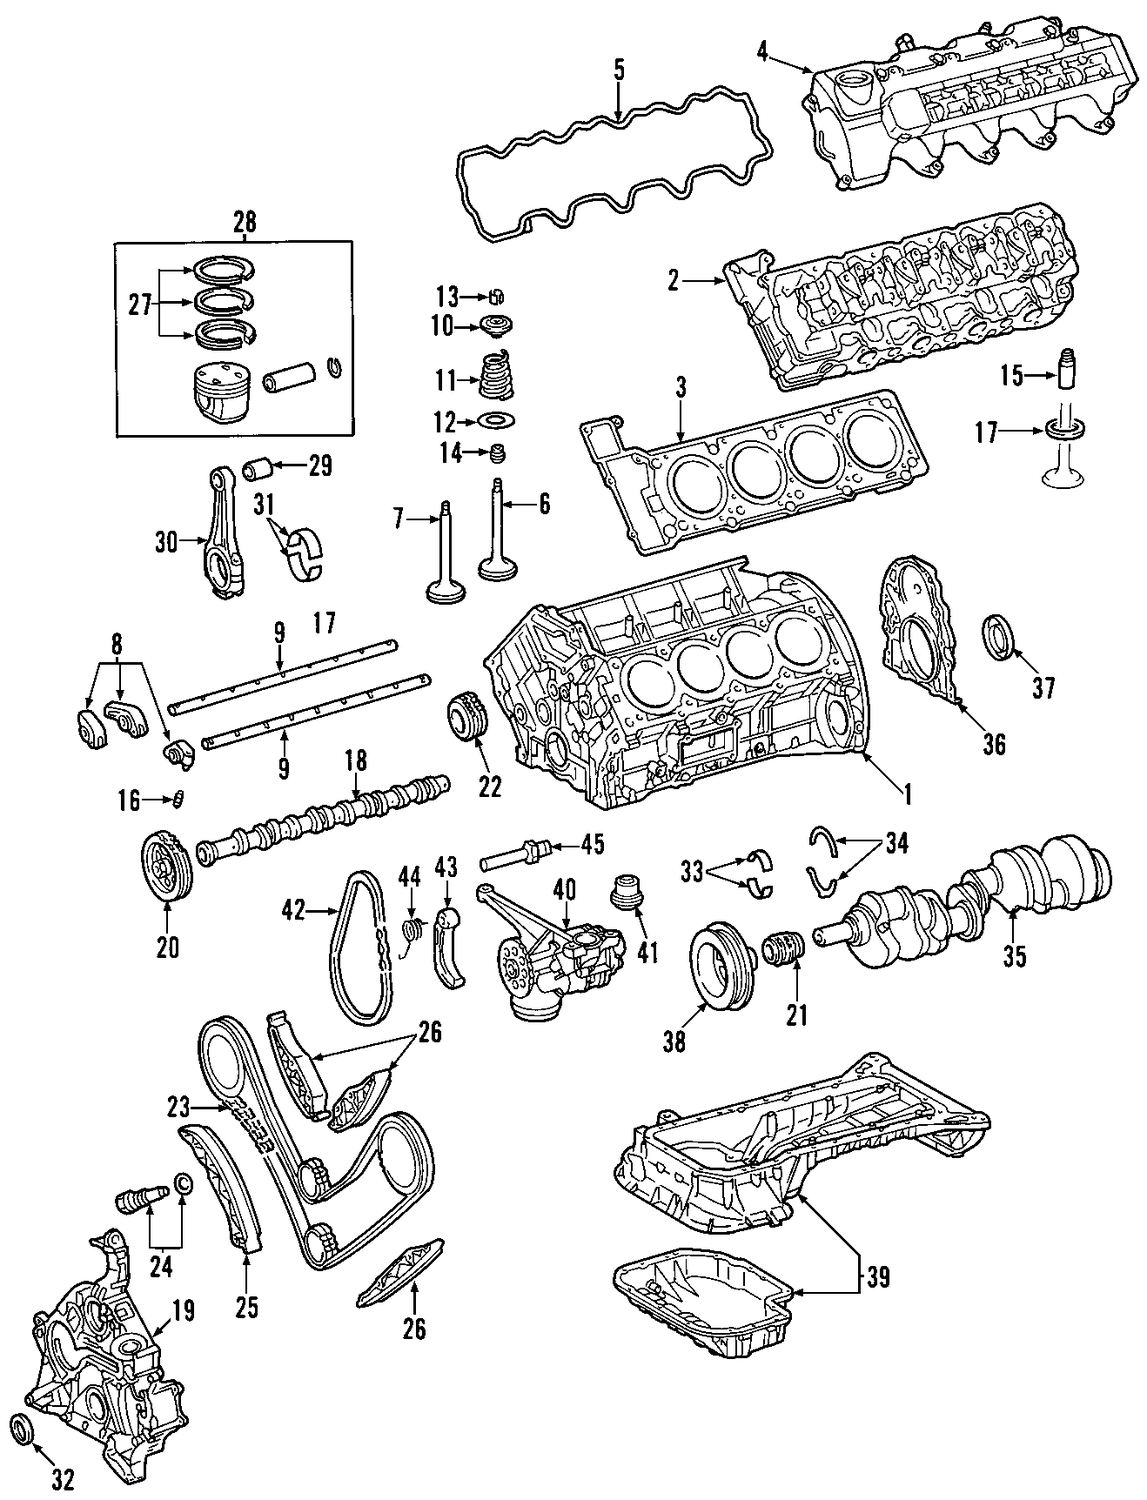 Mercedes C230 Engine Diagram